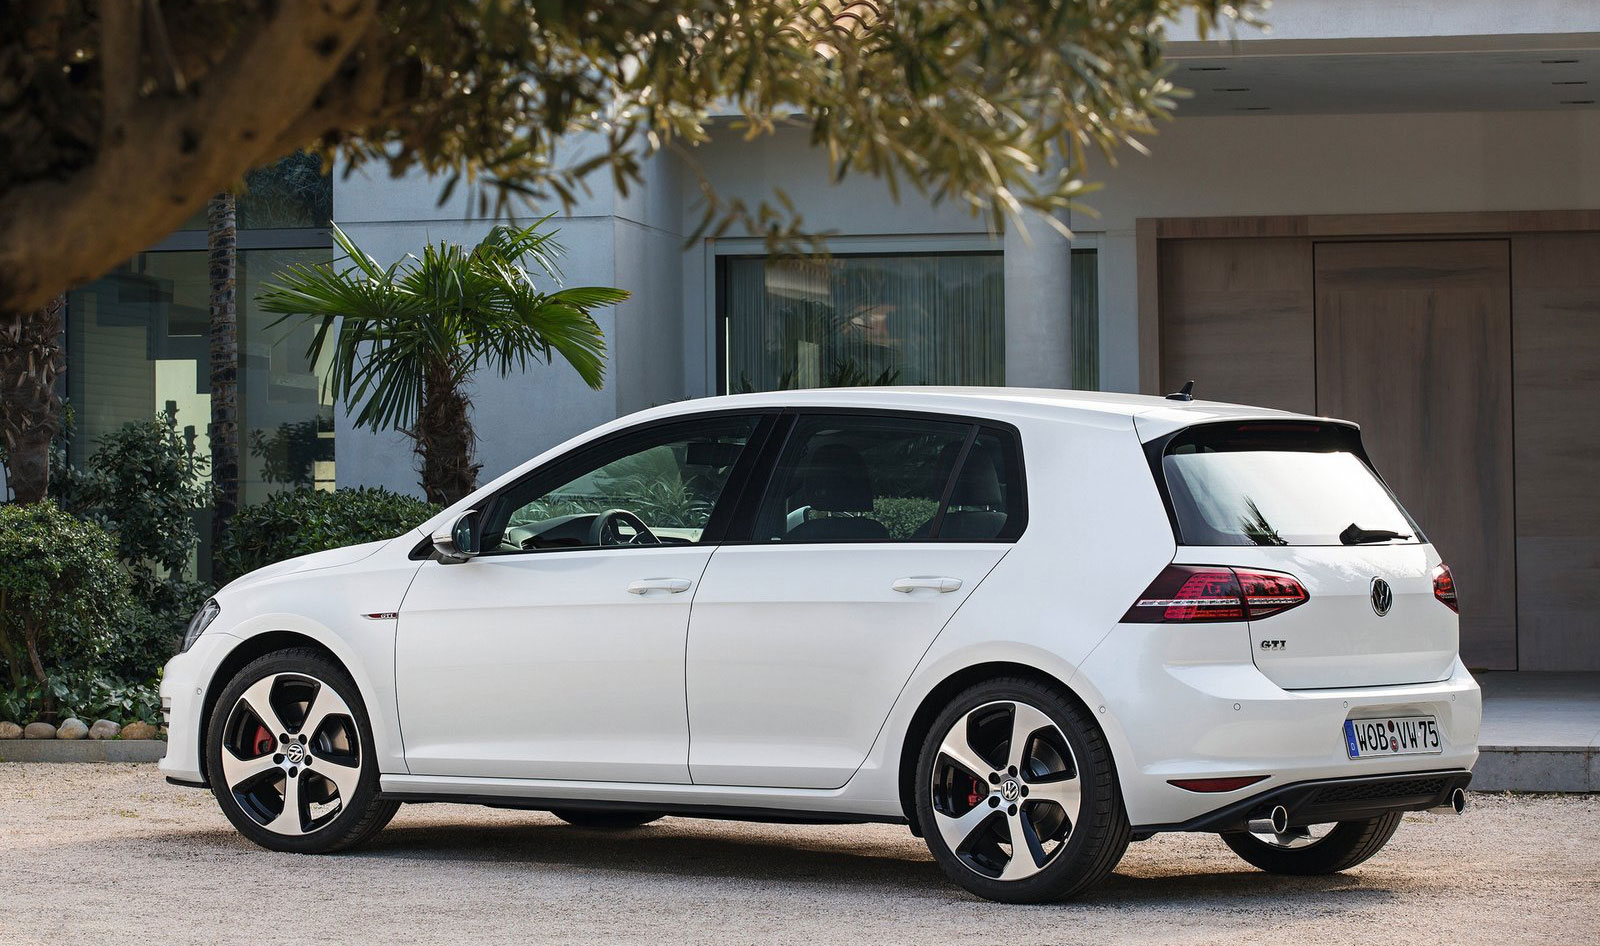 2013 Vw Golf Gti Performance Pack Video Review Pictures also 2013 Vw Golf Gti Performance Pack Video Review Pictures in addition 550565123176904793 additionally Volkswagen Golf 7 Led Taillights Retrofit Kit Vw R Oem 5g1052200 together with Der Neue Volkswagen Golf Gti 24. on vw golf gti mk7